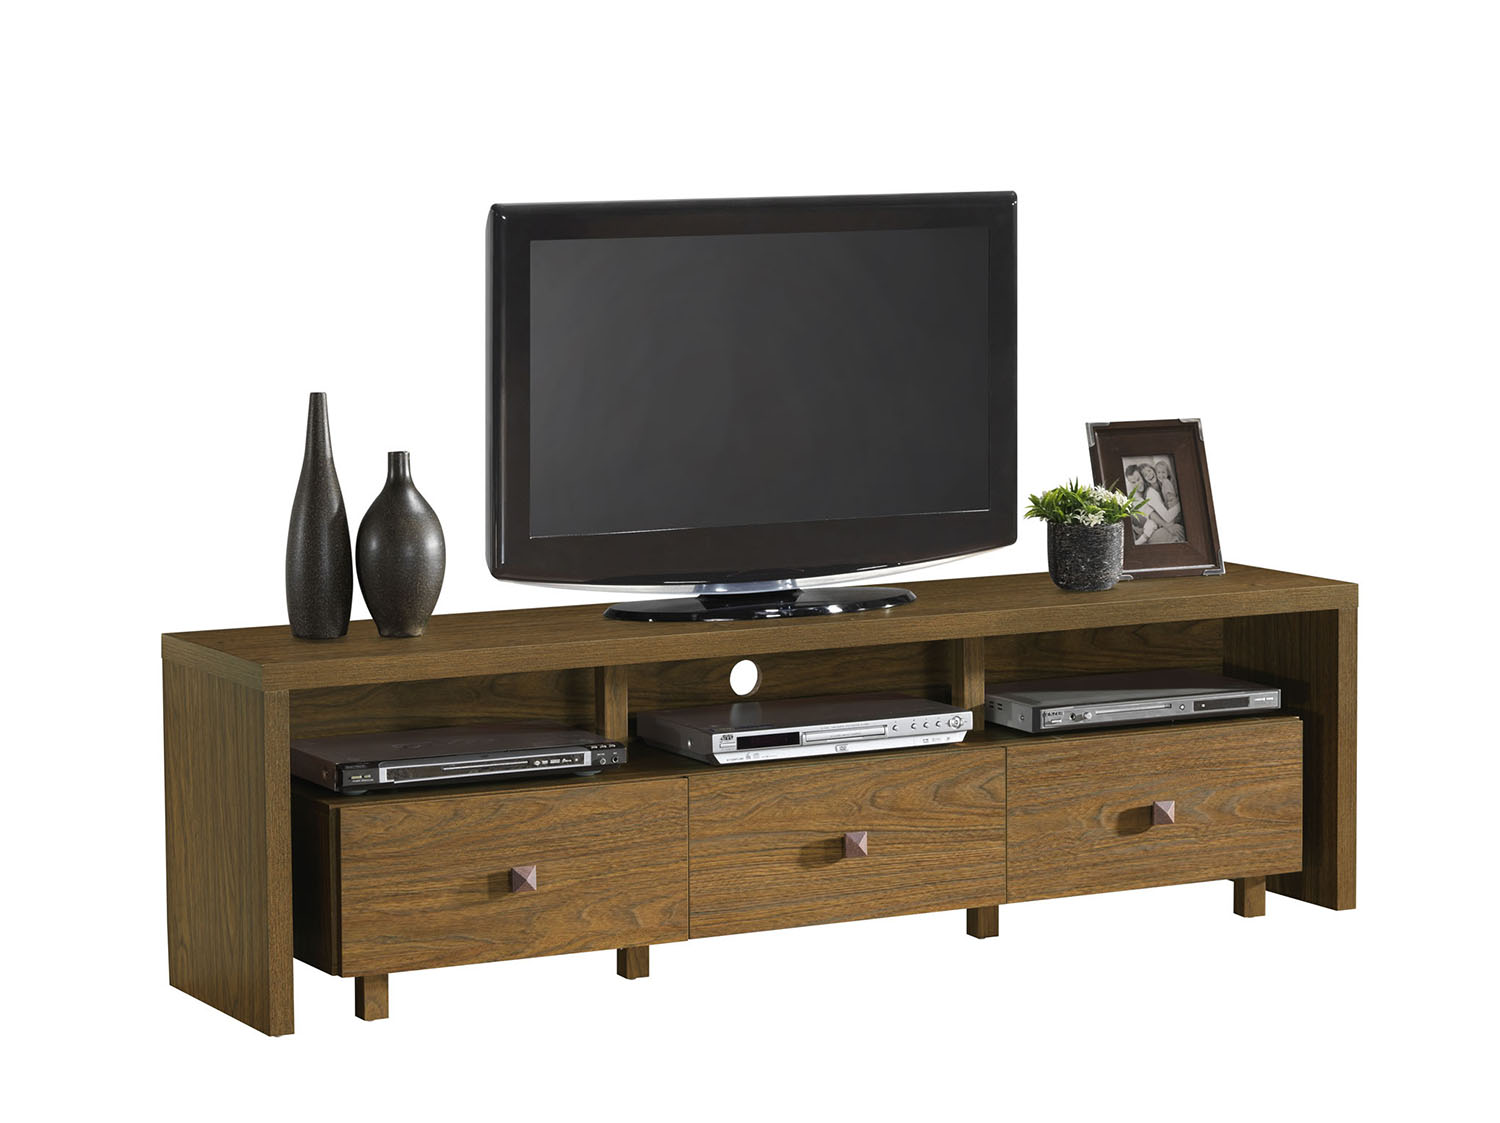 "Entertainment Center TV Stand with Drawers Shelves For TV/'s Up to 75/"" in Walnut"